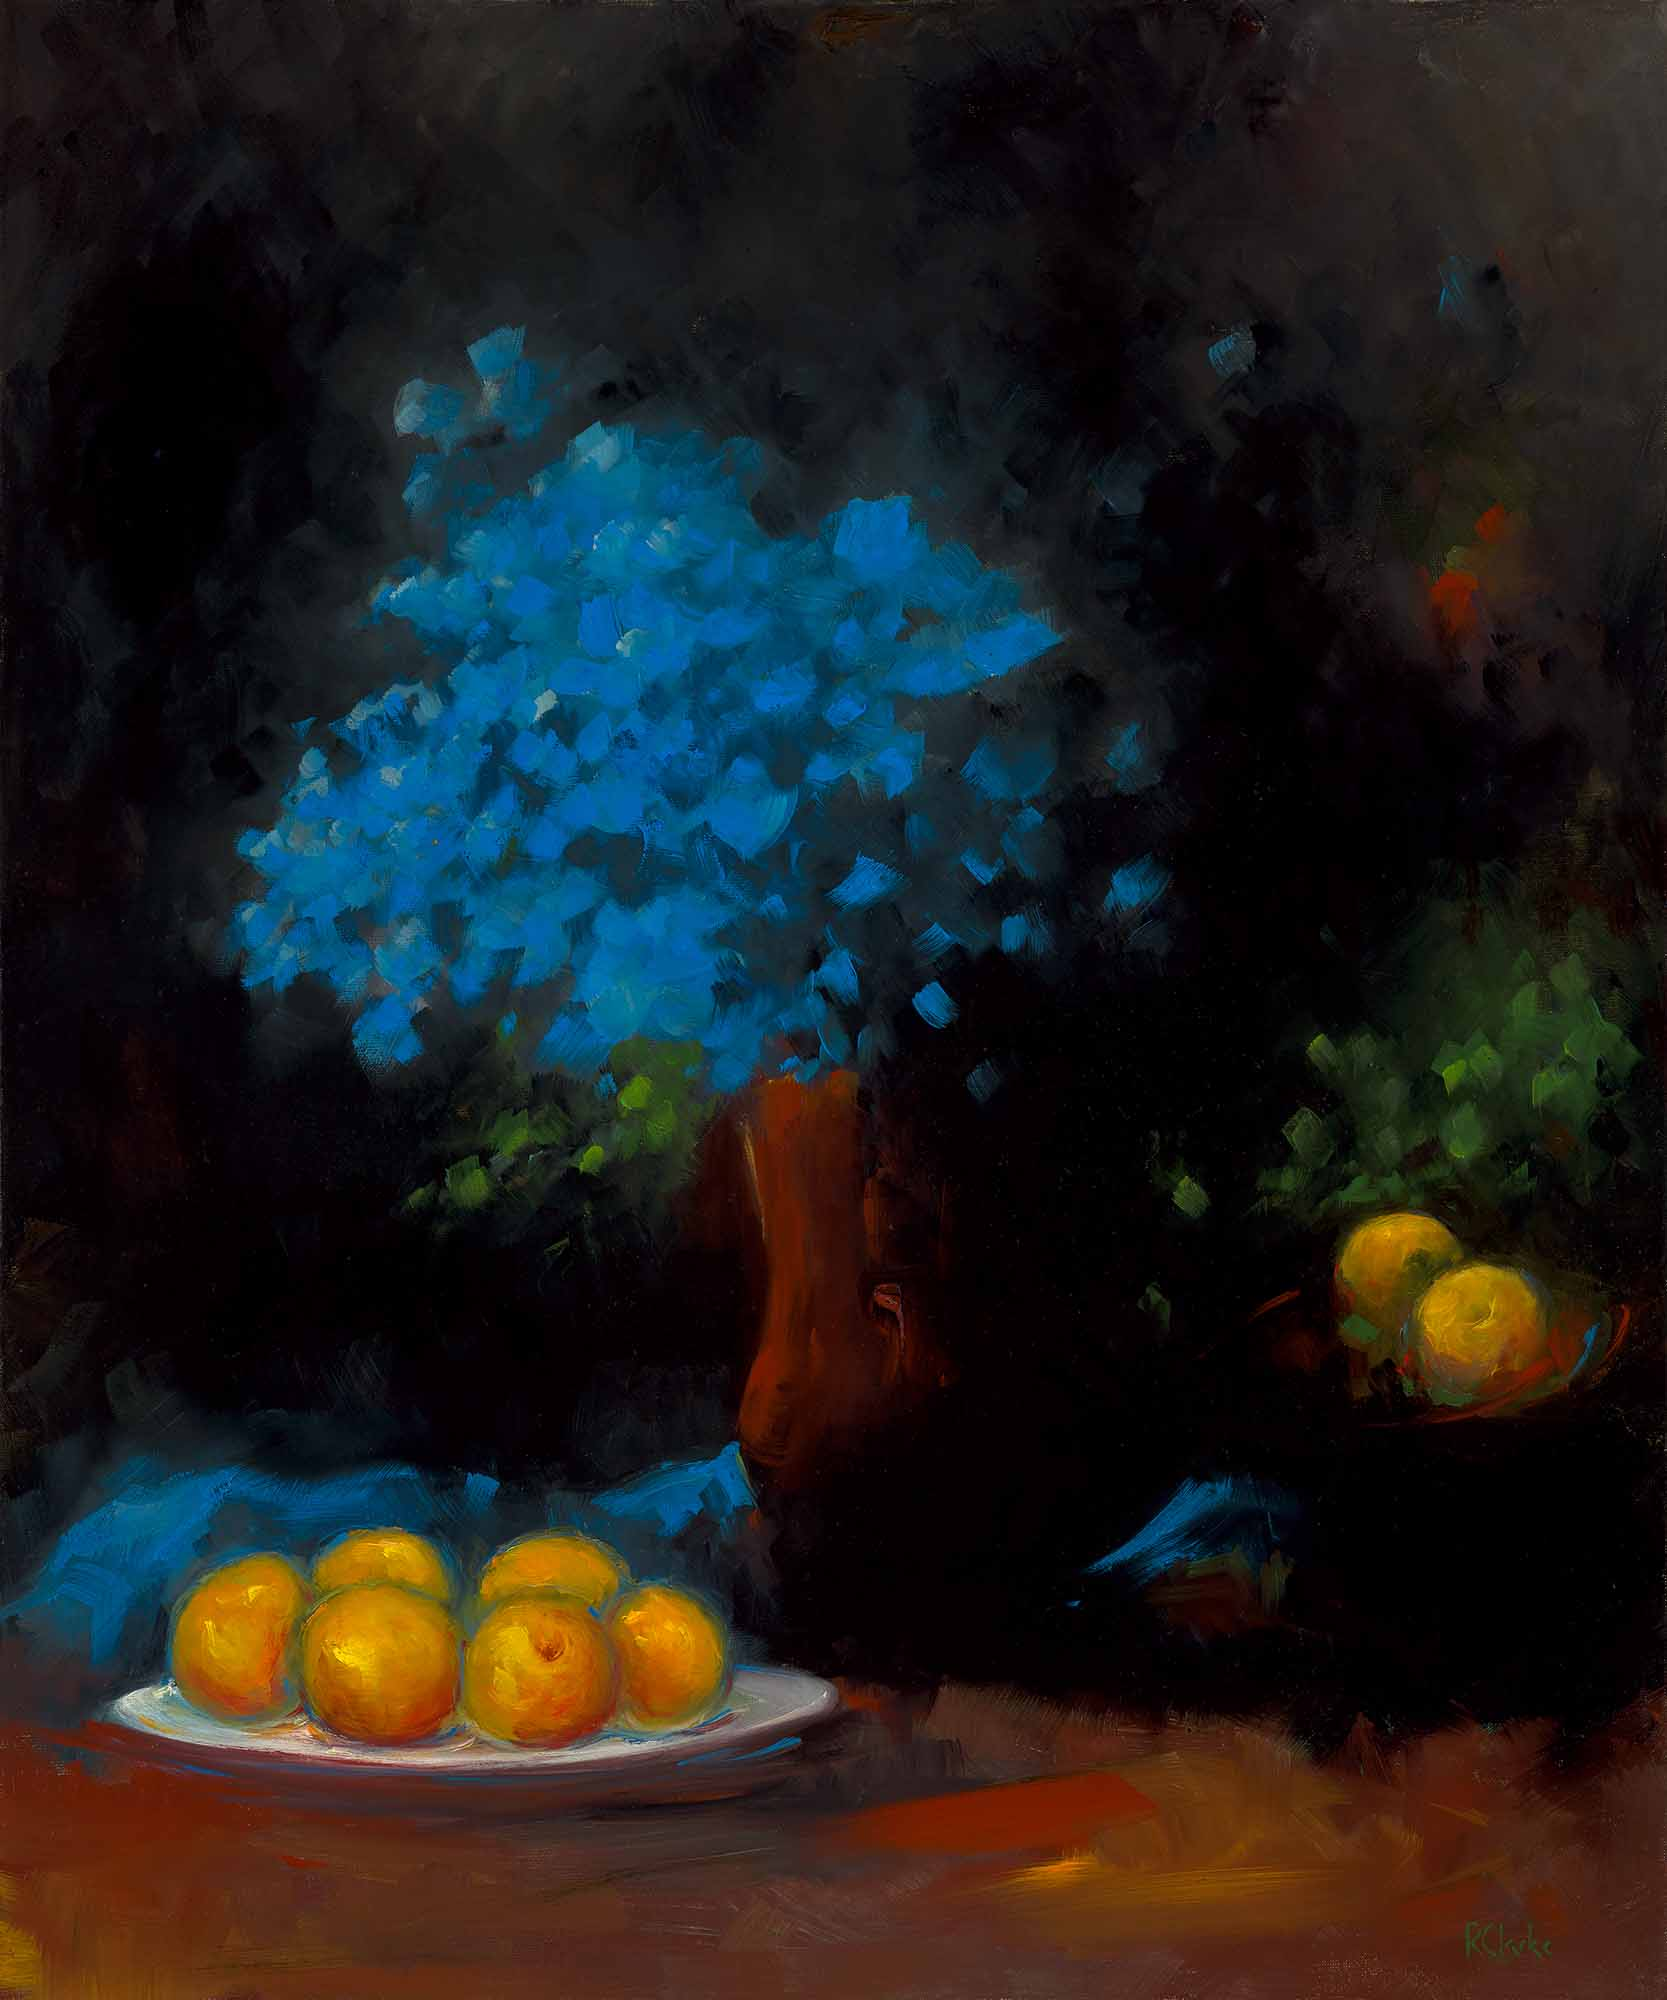 Roger clarke 002 blue petals and peaches 2000px vhunk8